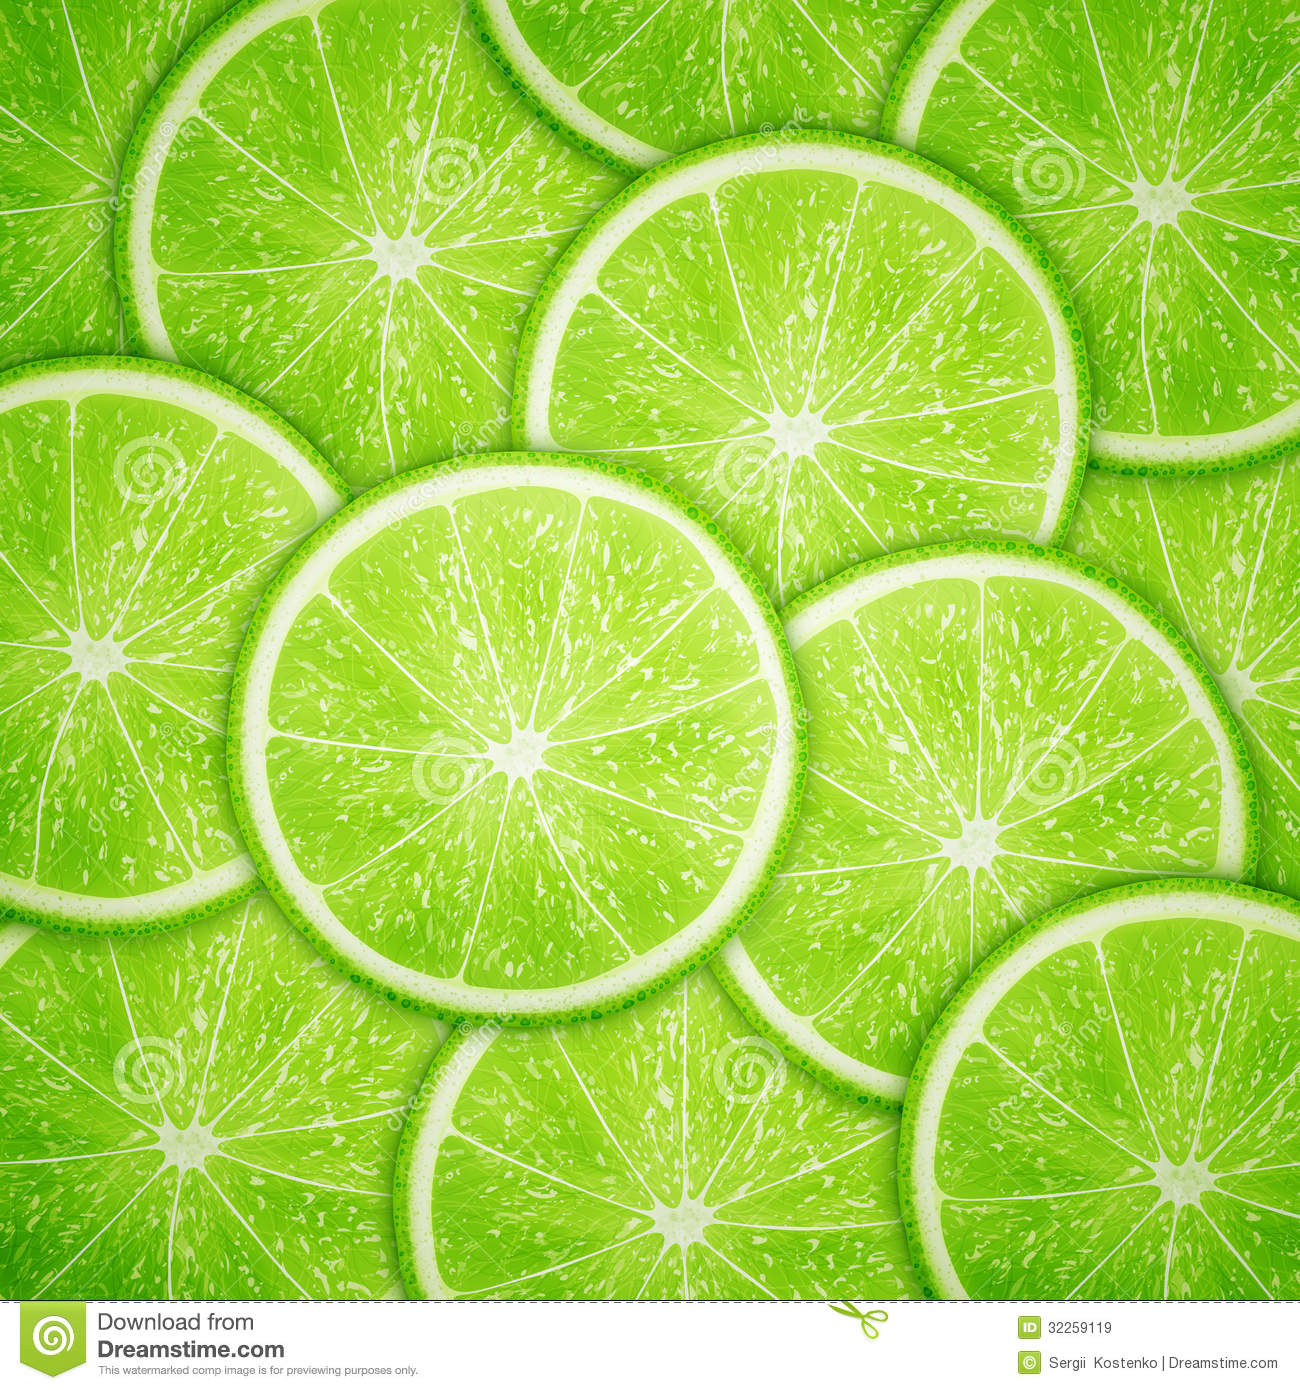 Lime Fruit Slices Background Stock Vector - Illustration of collection, group: 32259119